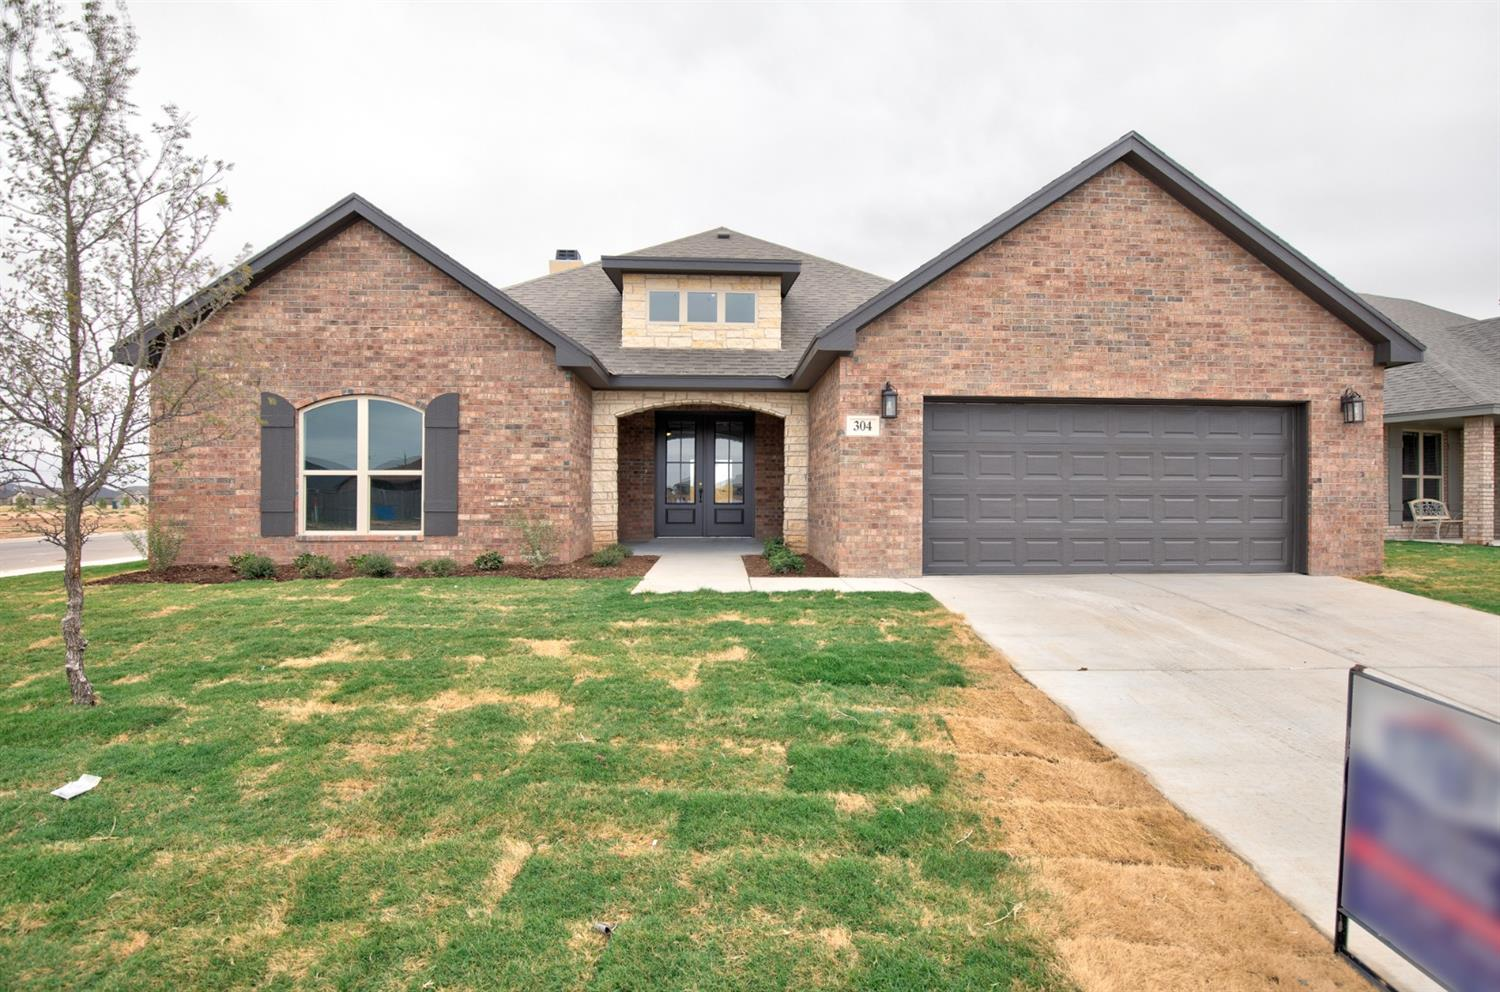 Welcome Home! Walking into this well designed open concept floor plan you will be greeted with a large open living area boasting a large rocked fireplace, luxury wood tile flooring, tall ceilings throughout and tons of natural light. The chefs kitchen features tons of cabinet space, granite countertops, and a  large island great for entertaining! The isolated master suite features a large walk in shower, soaking tub and a spacious closet! Outside you will find a large covered patio perfect for those summer nights! There is still time to customize it to your style!